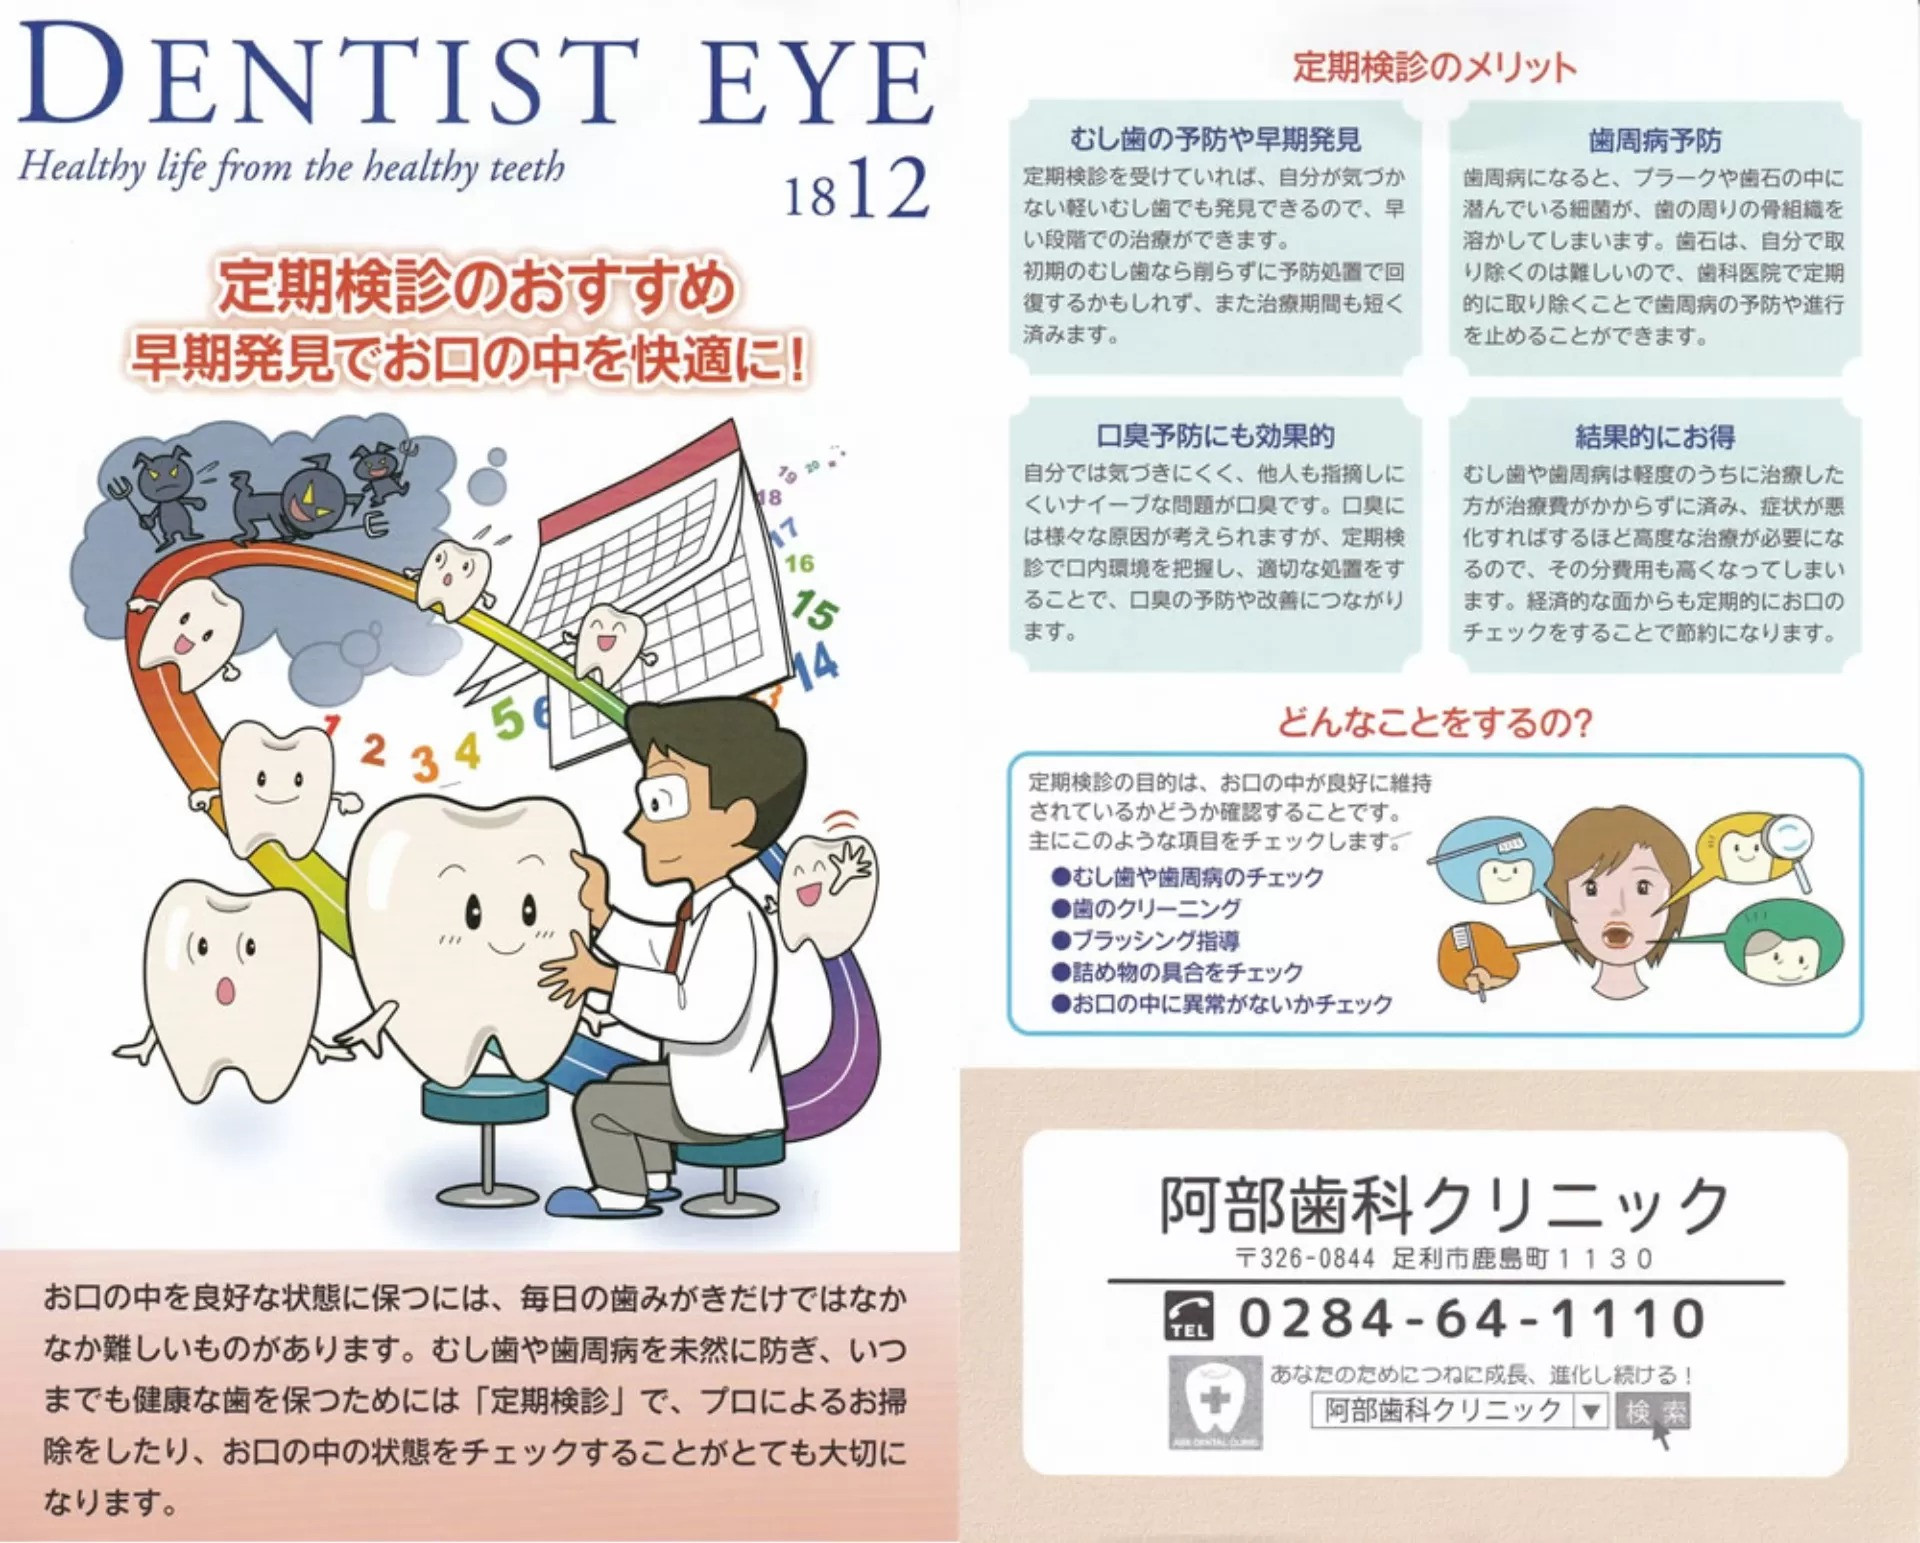 DENTIST EYE 2018年